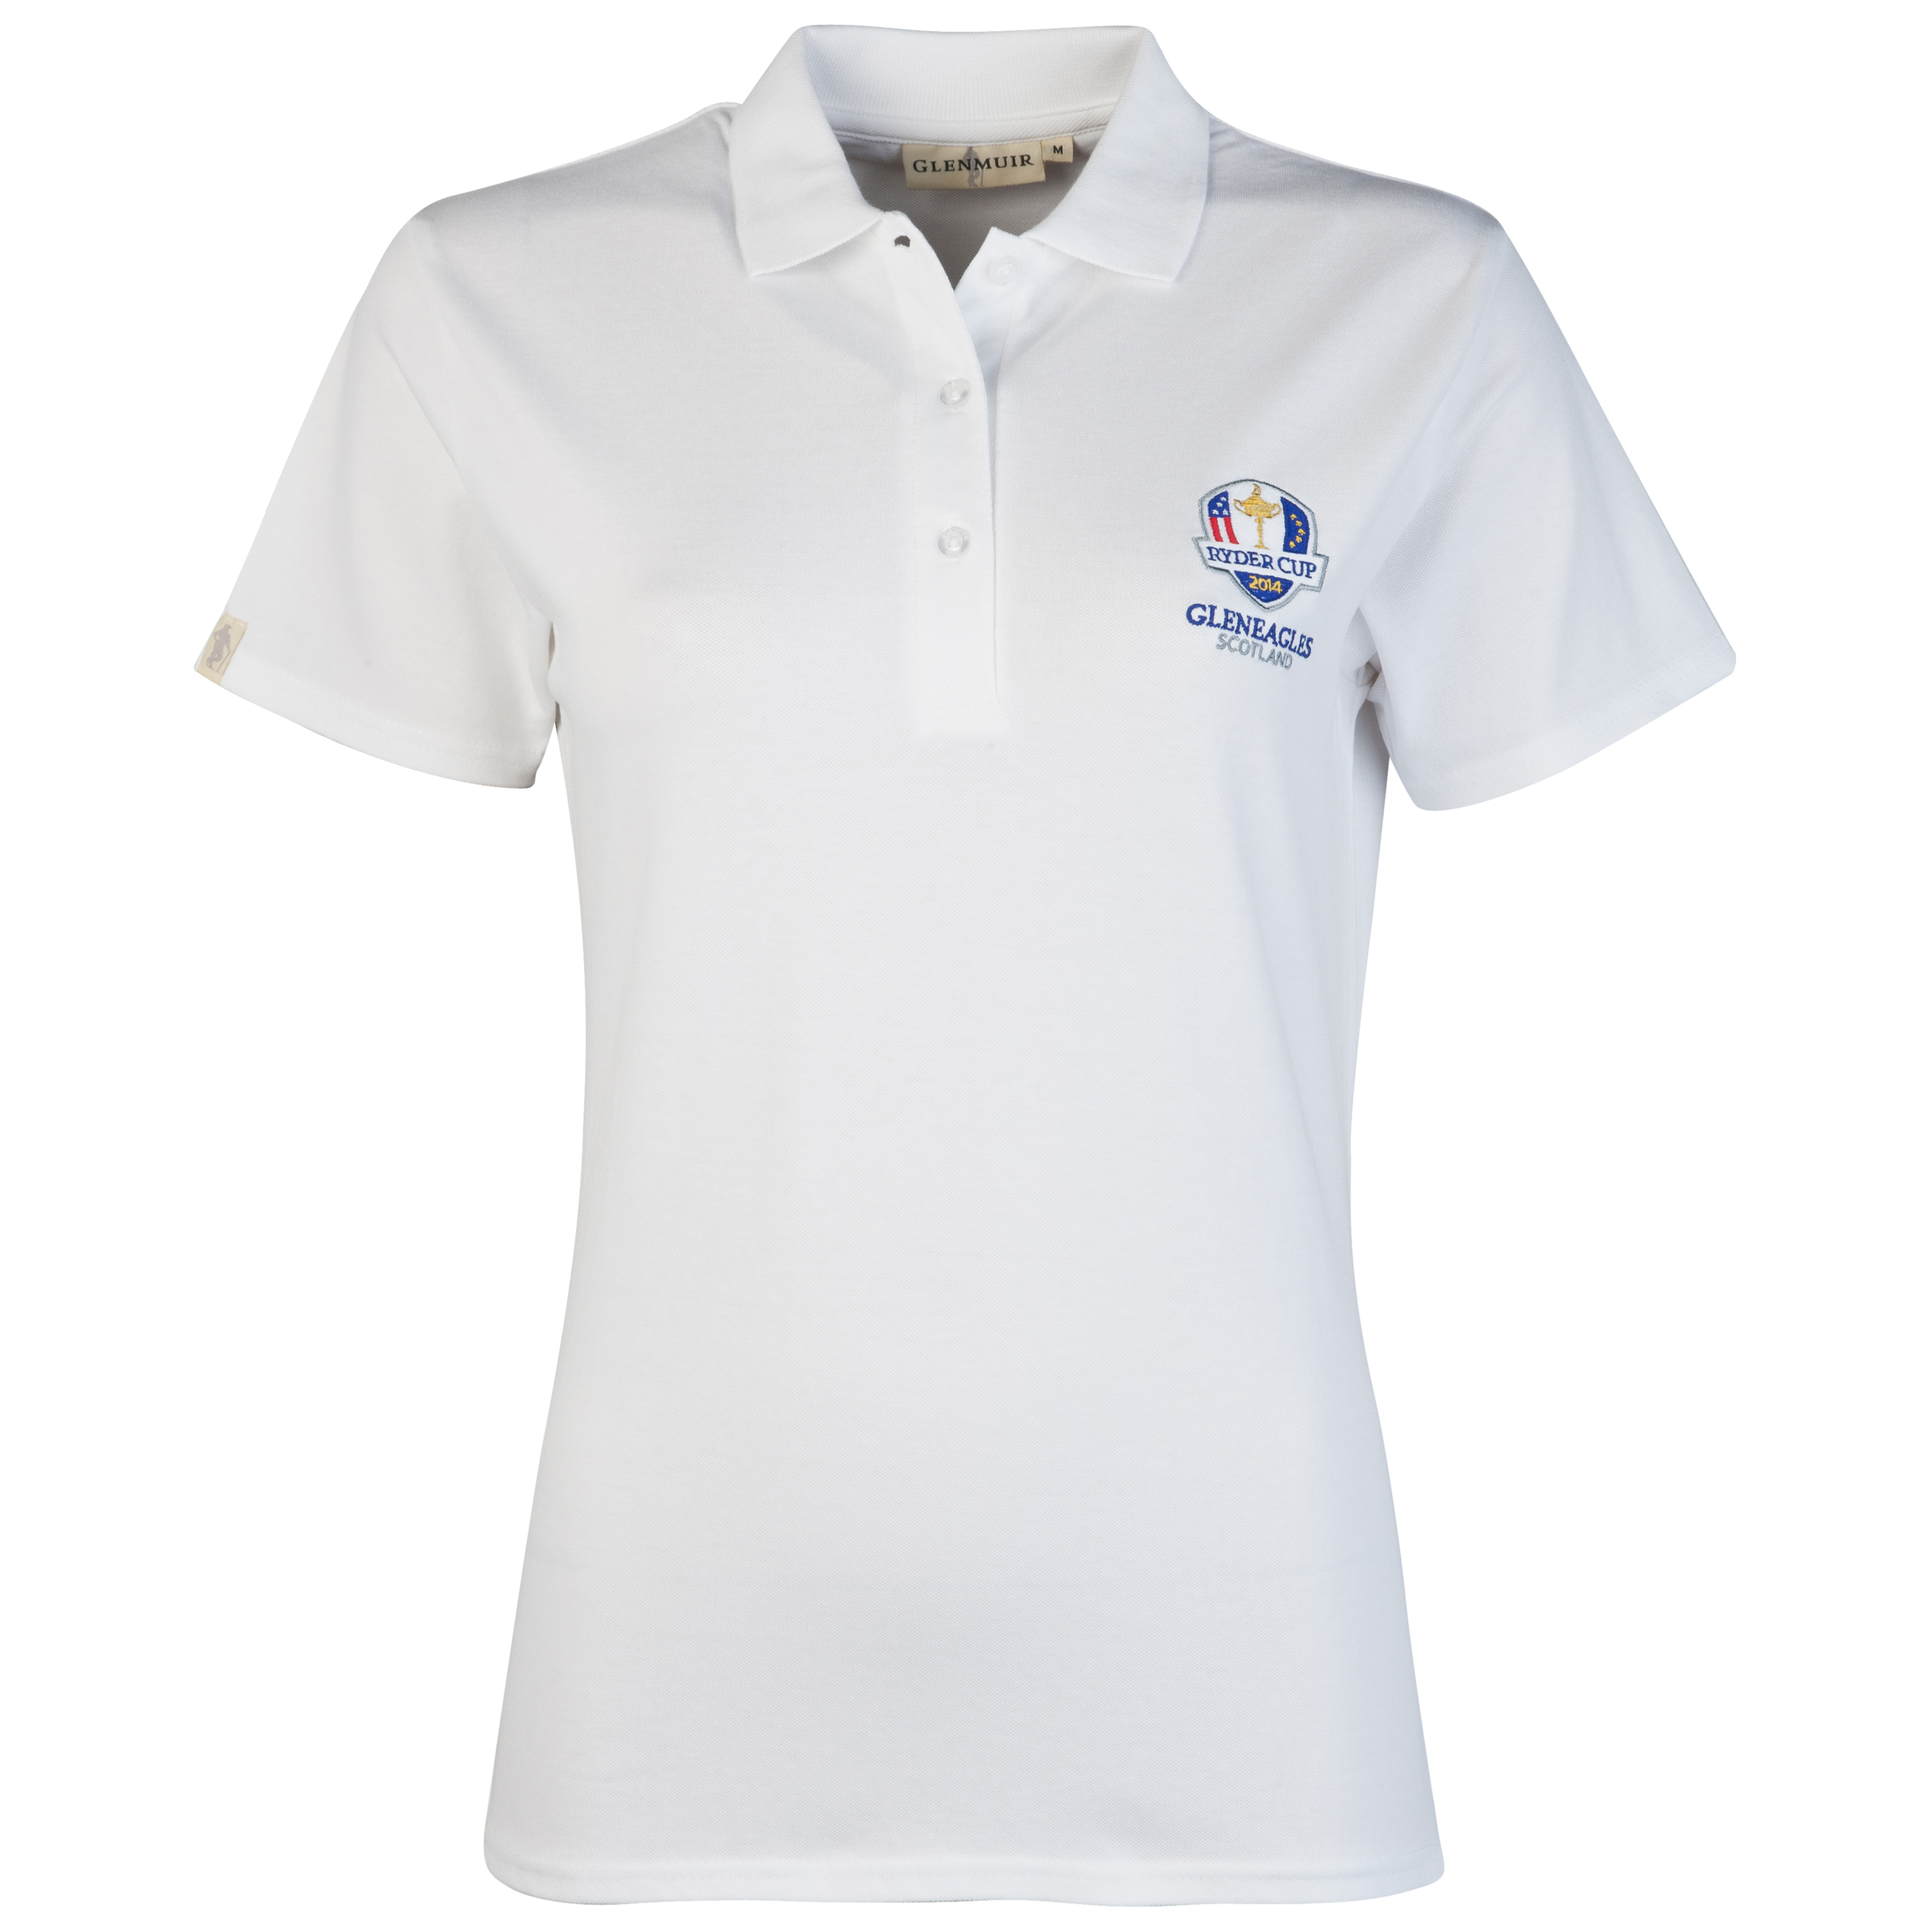 The 2014 Ryder Cup Glenmuir Sophie Womens Polo - White